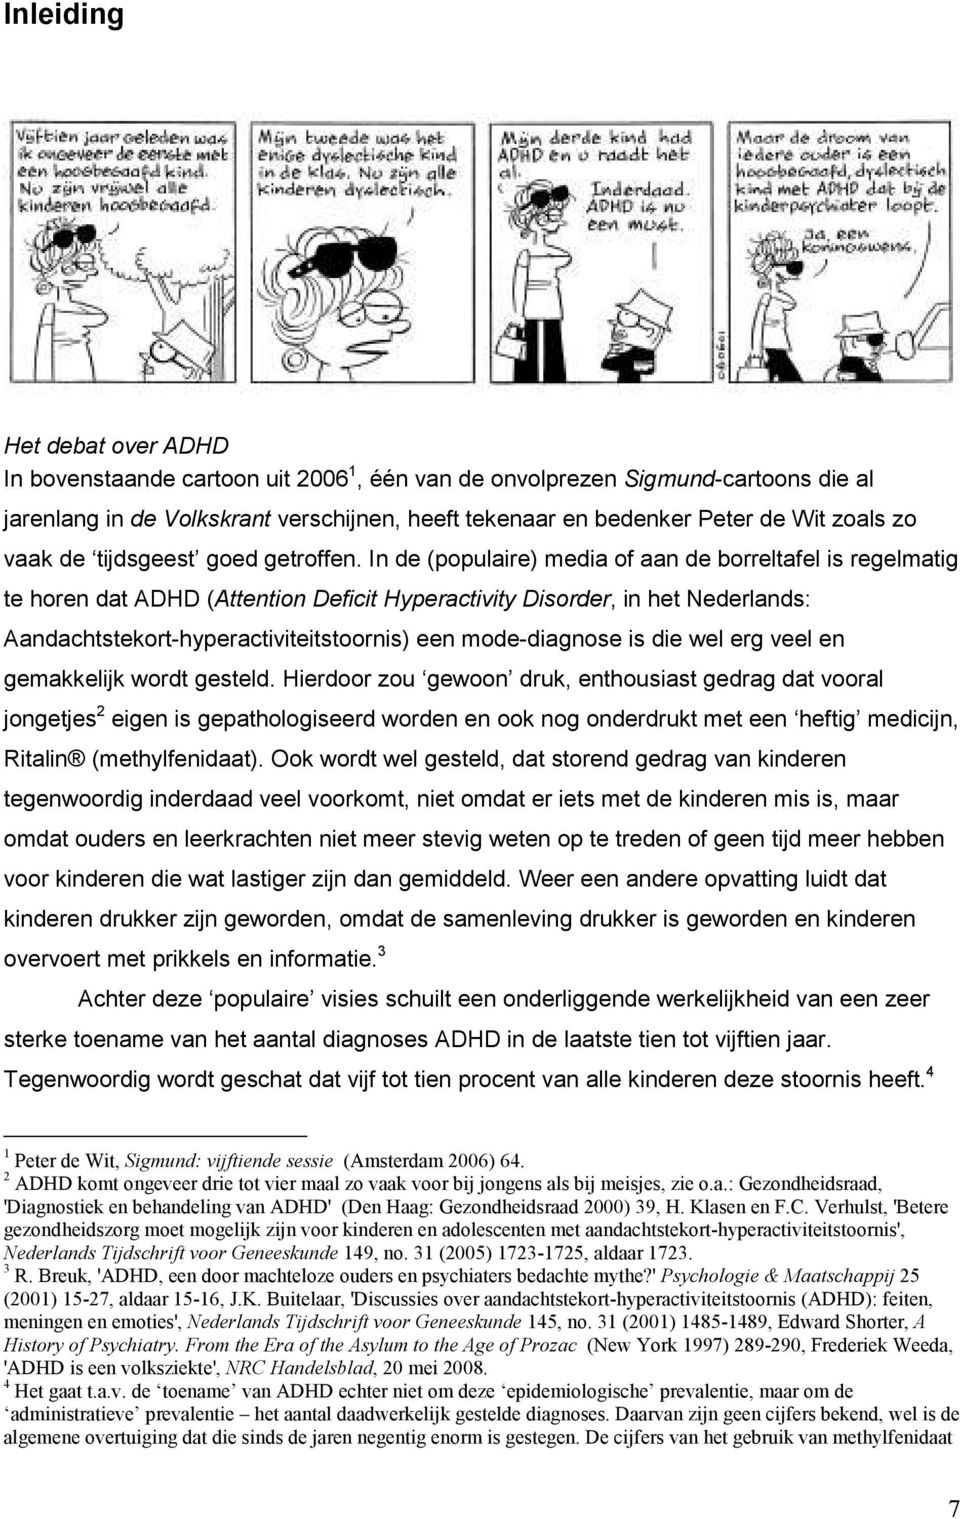 In de (populaire) media of aan de borreltafel is regelmatig te horen dat ADHD (Attention Deficit Hyperactivity Disorder, in het Nederlands: Aandachtstekort-hyperactiviteitstoornis) een mode-diagnose